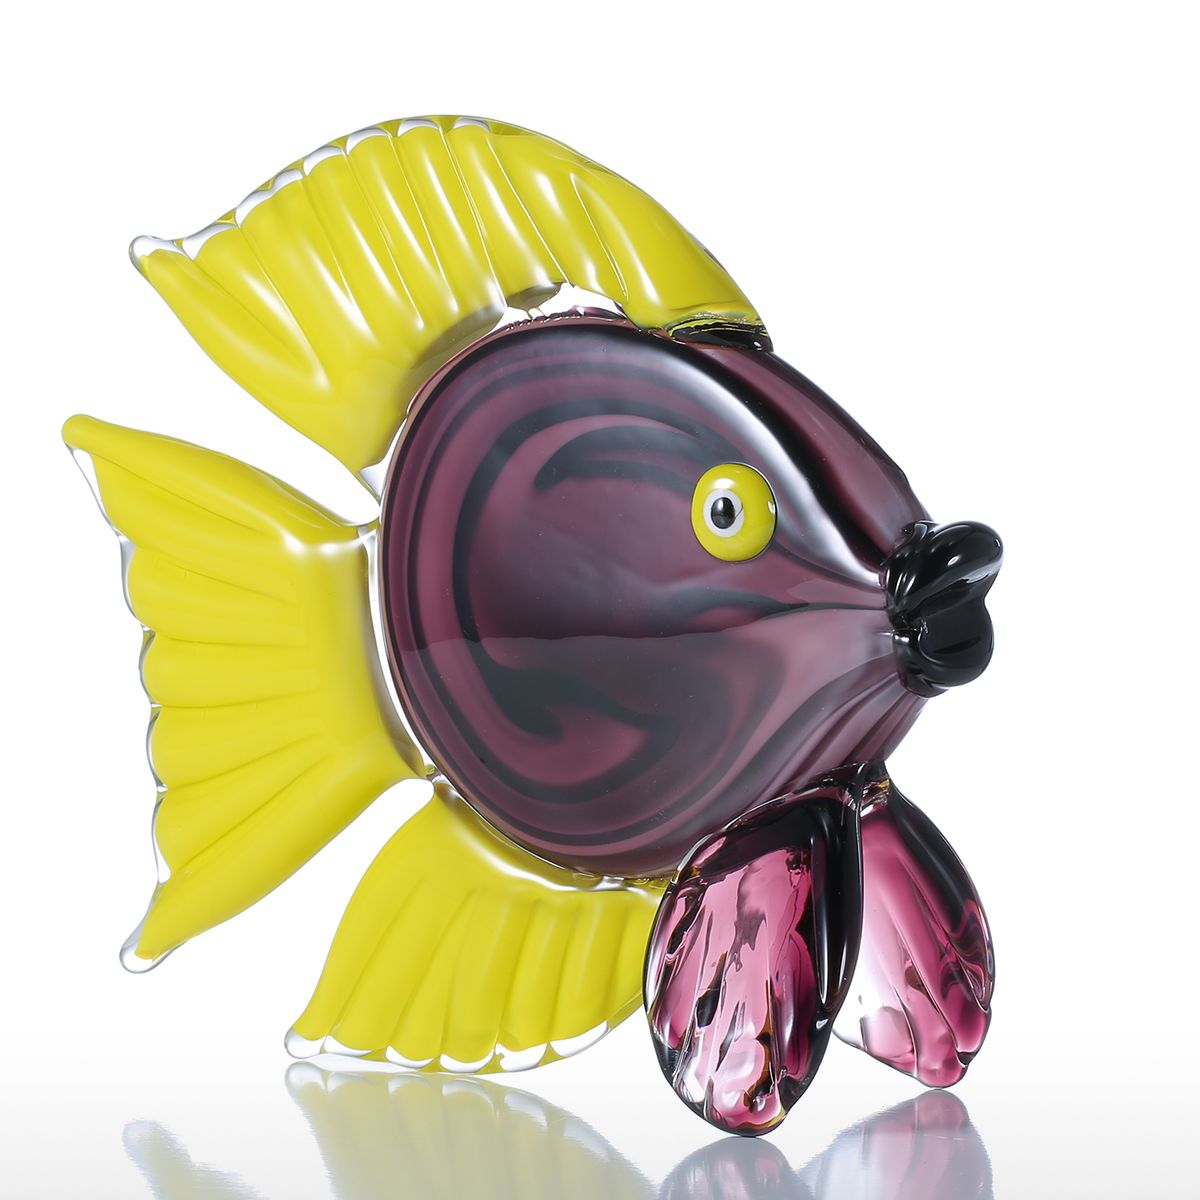 Best and cheap purple Tooarts Yellow Tropical Fish Glass Sculpture Home Decor Animal Ornament Gift Craft Decoration - Tooarts.com